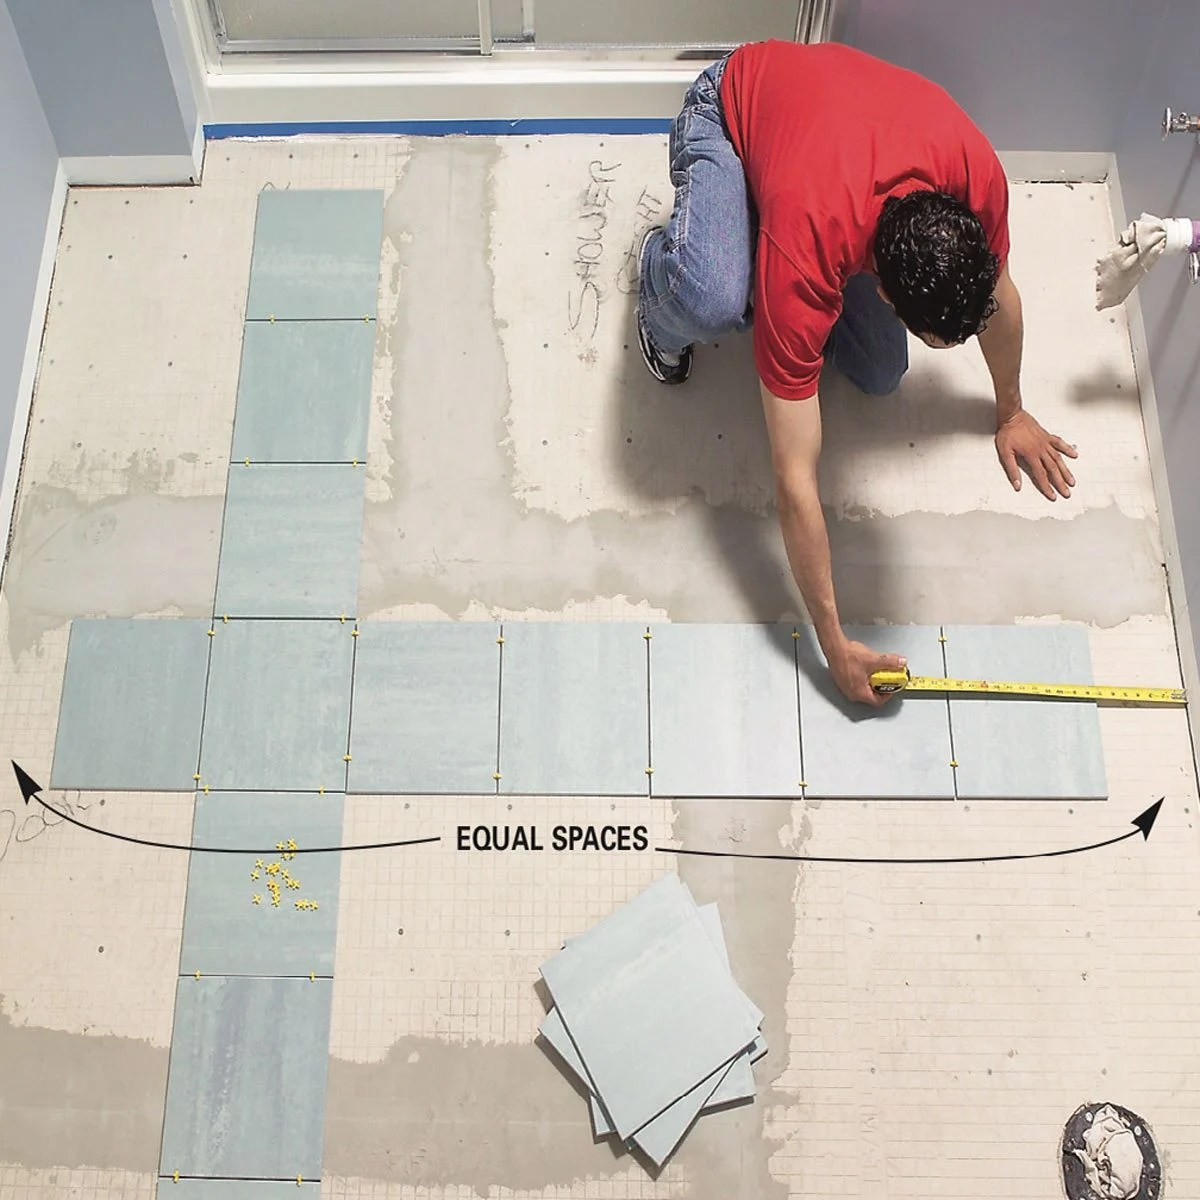 How To Lay Tile Install A Ceramic Tile Floor In The Bathroom Diy Family Handyman